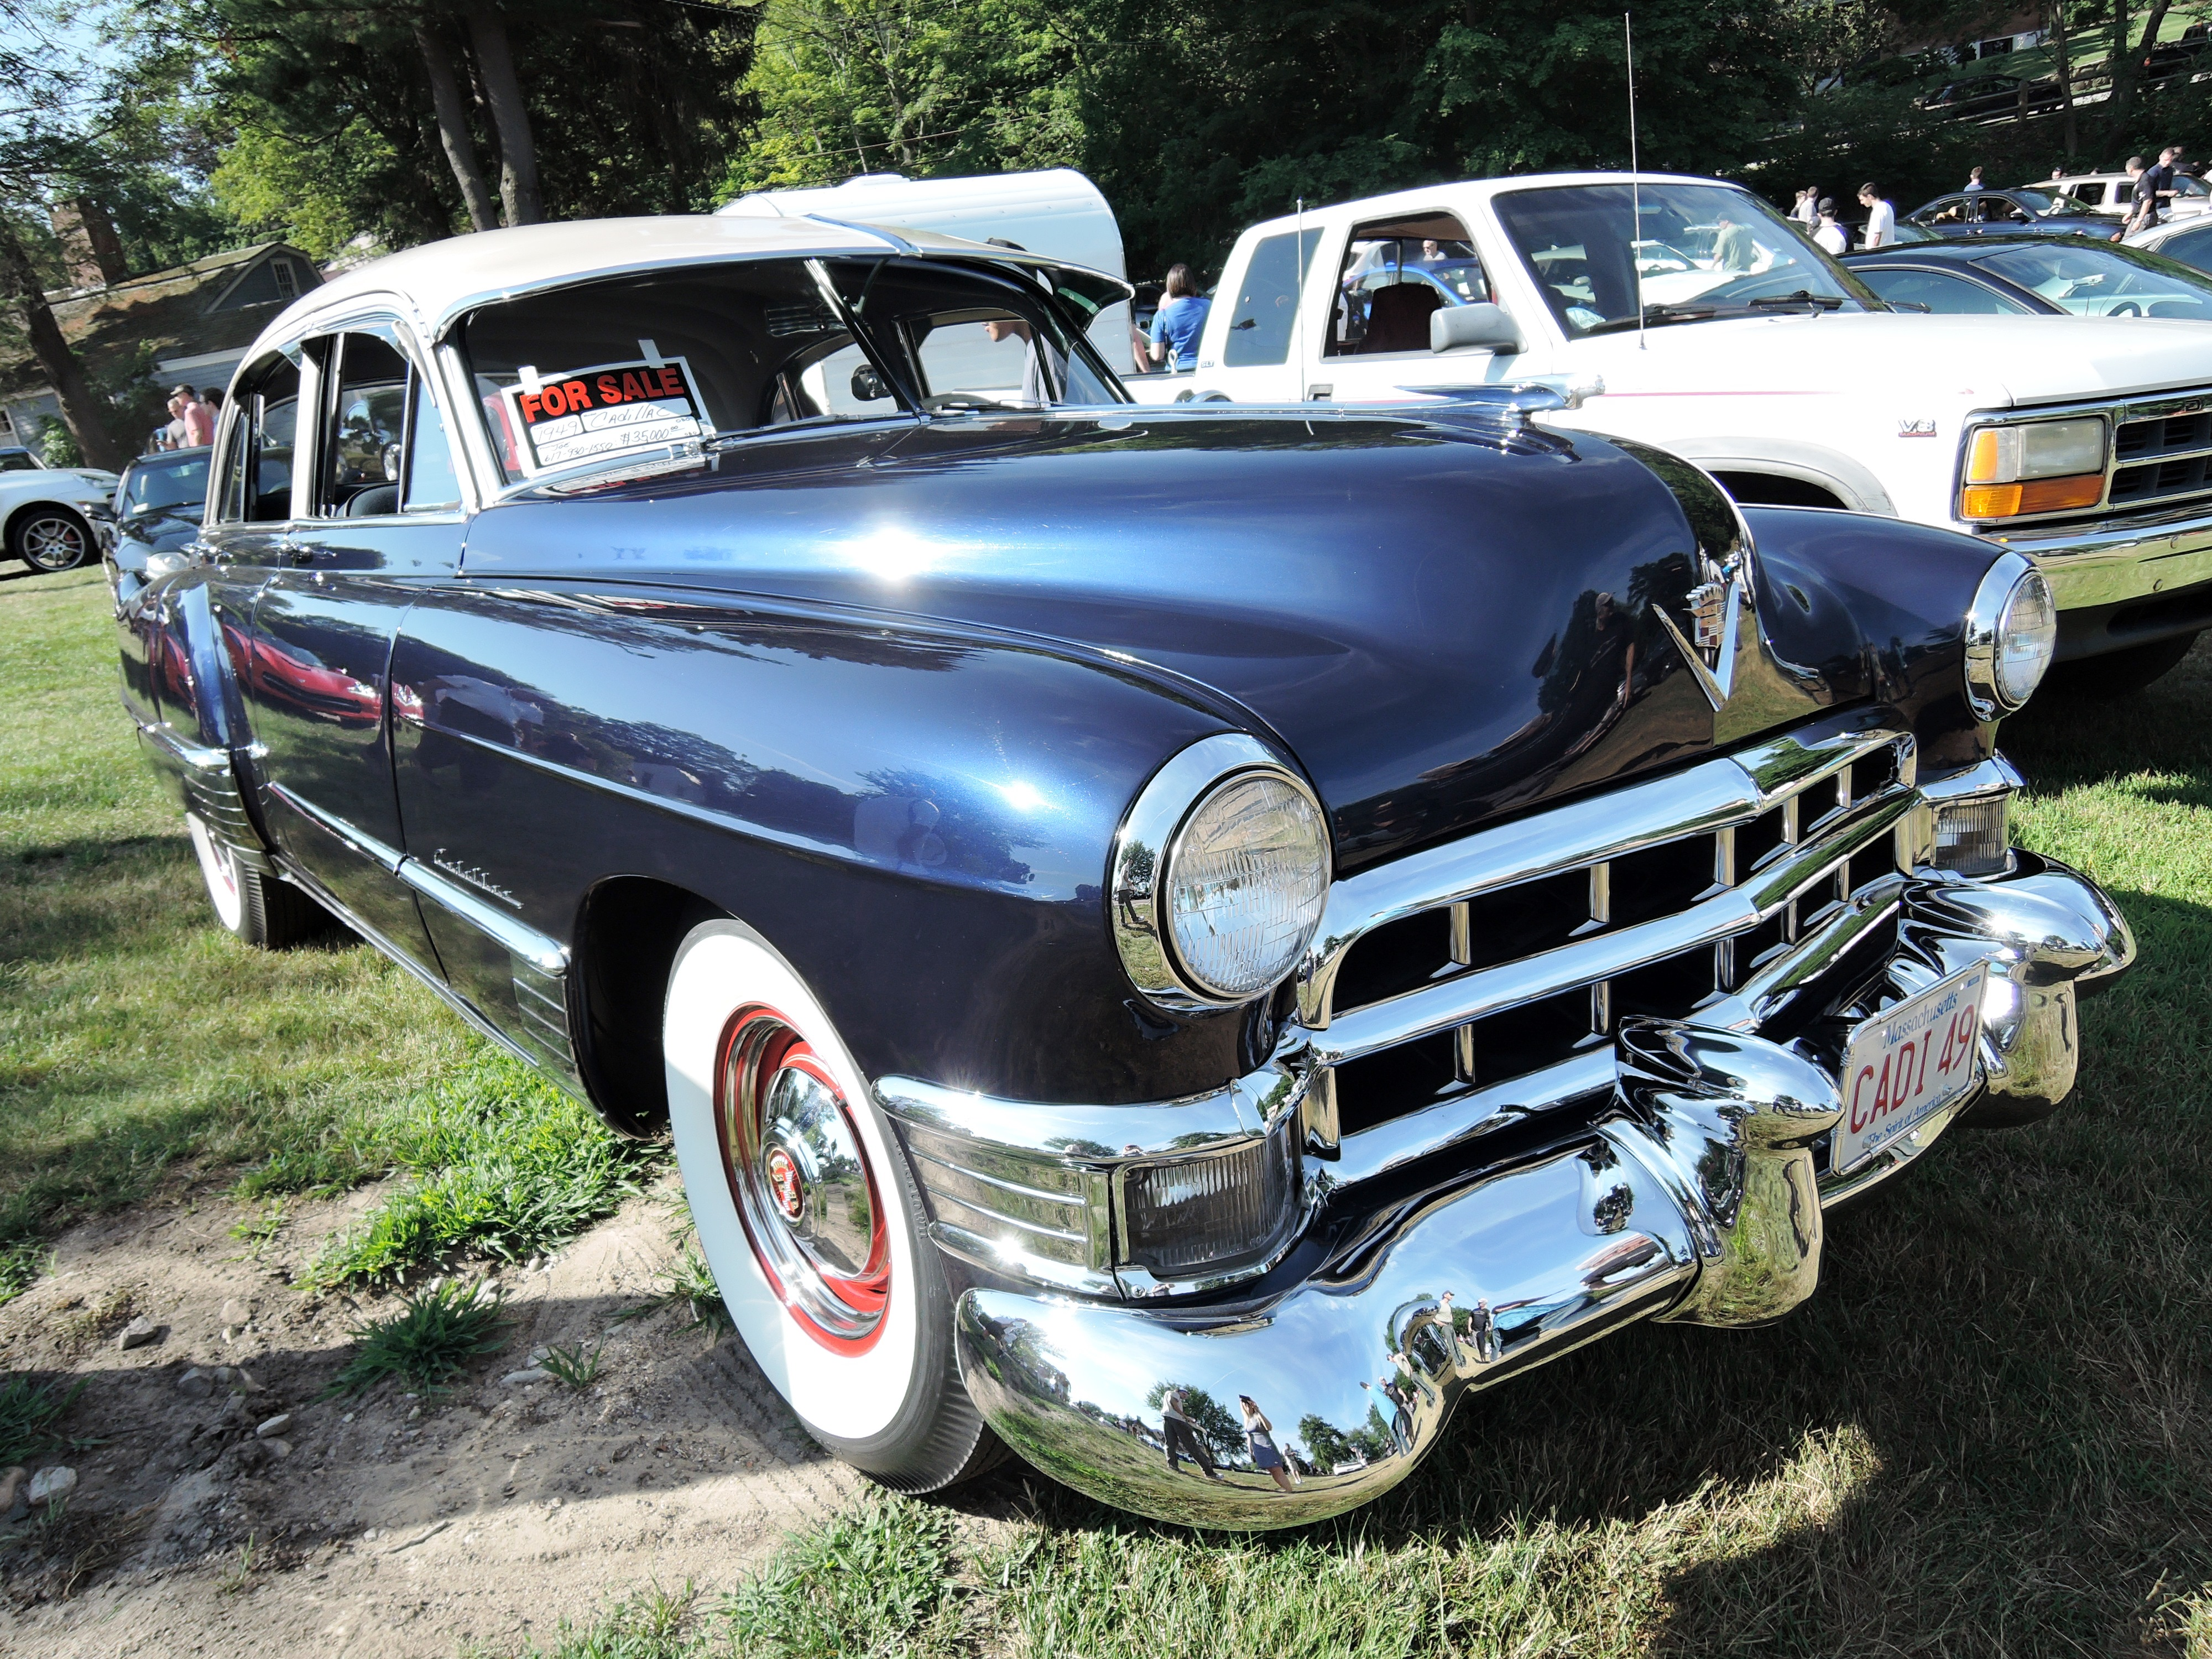 blue 1949 cadillac - Cars and coffee at larz